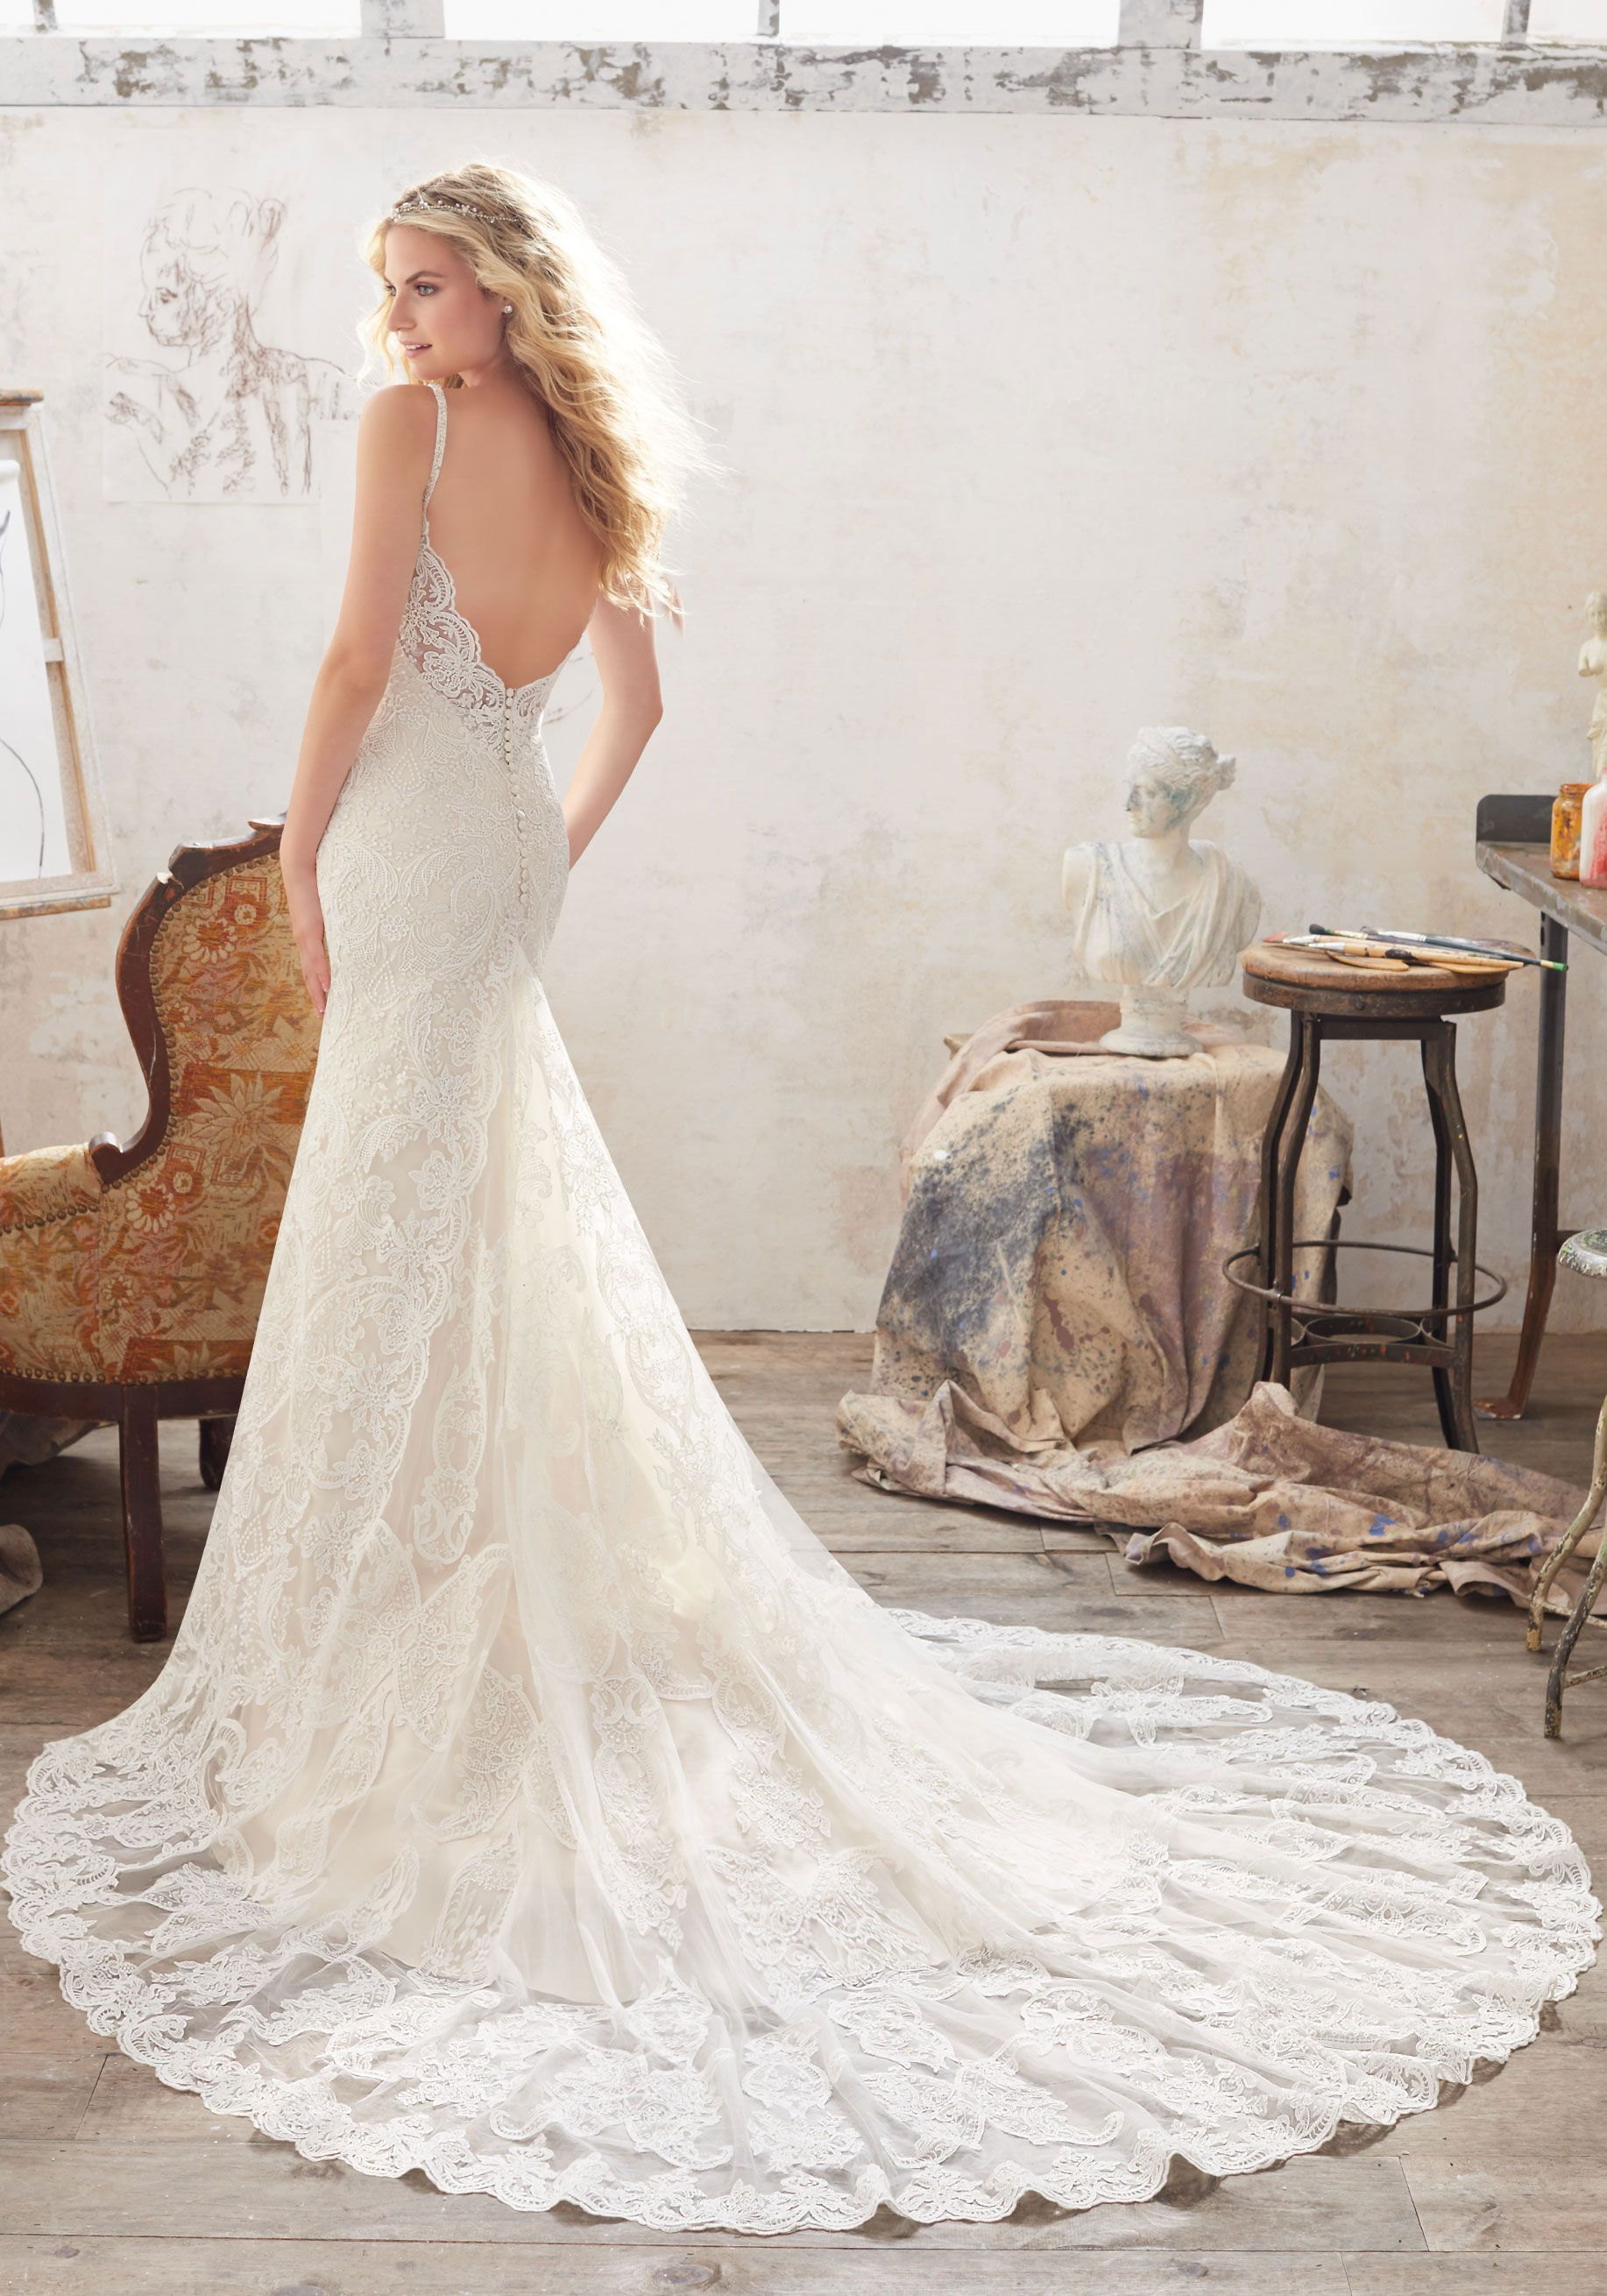 Cool Morilee by Madeline Gardner uMalia u Romantic Wedding Dress Featuring Allover Embroidered Lace